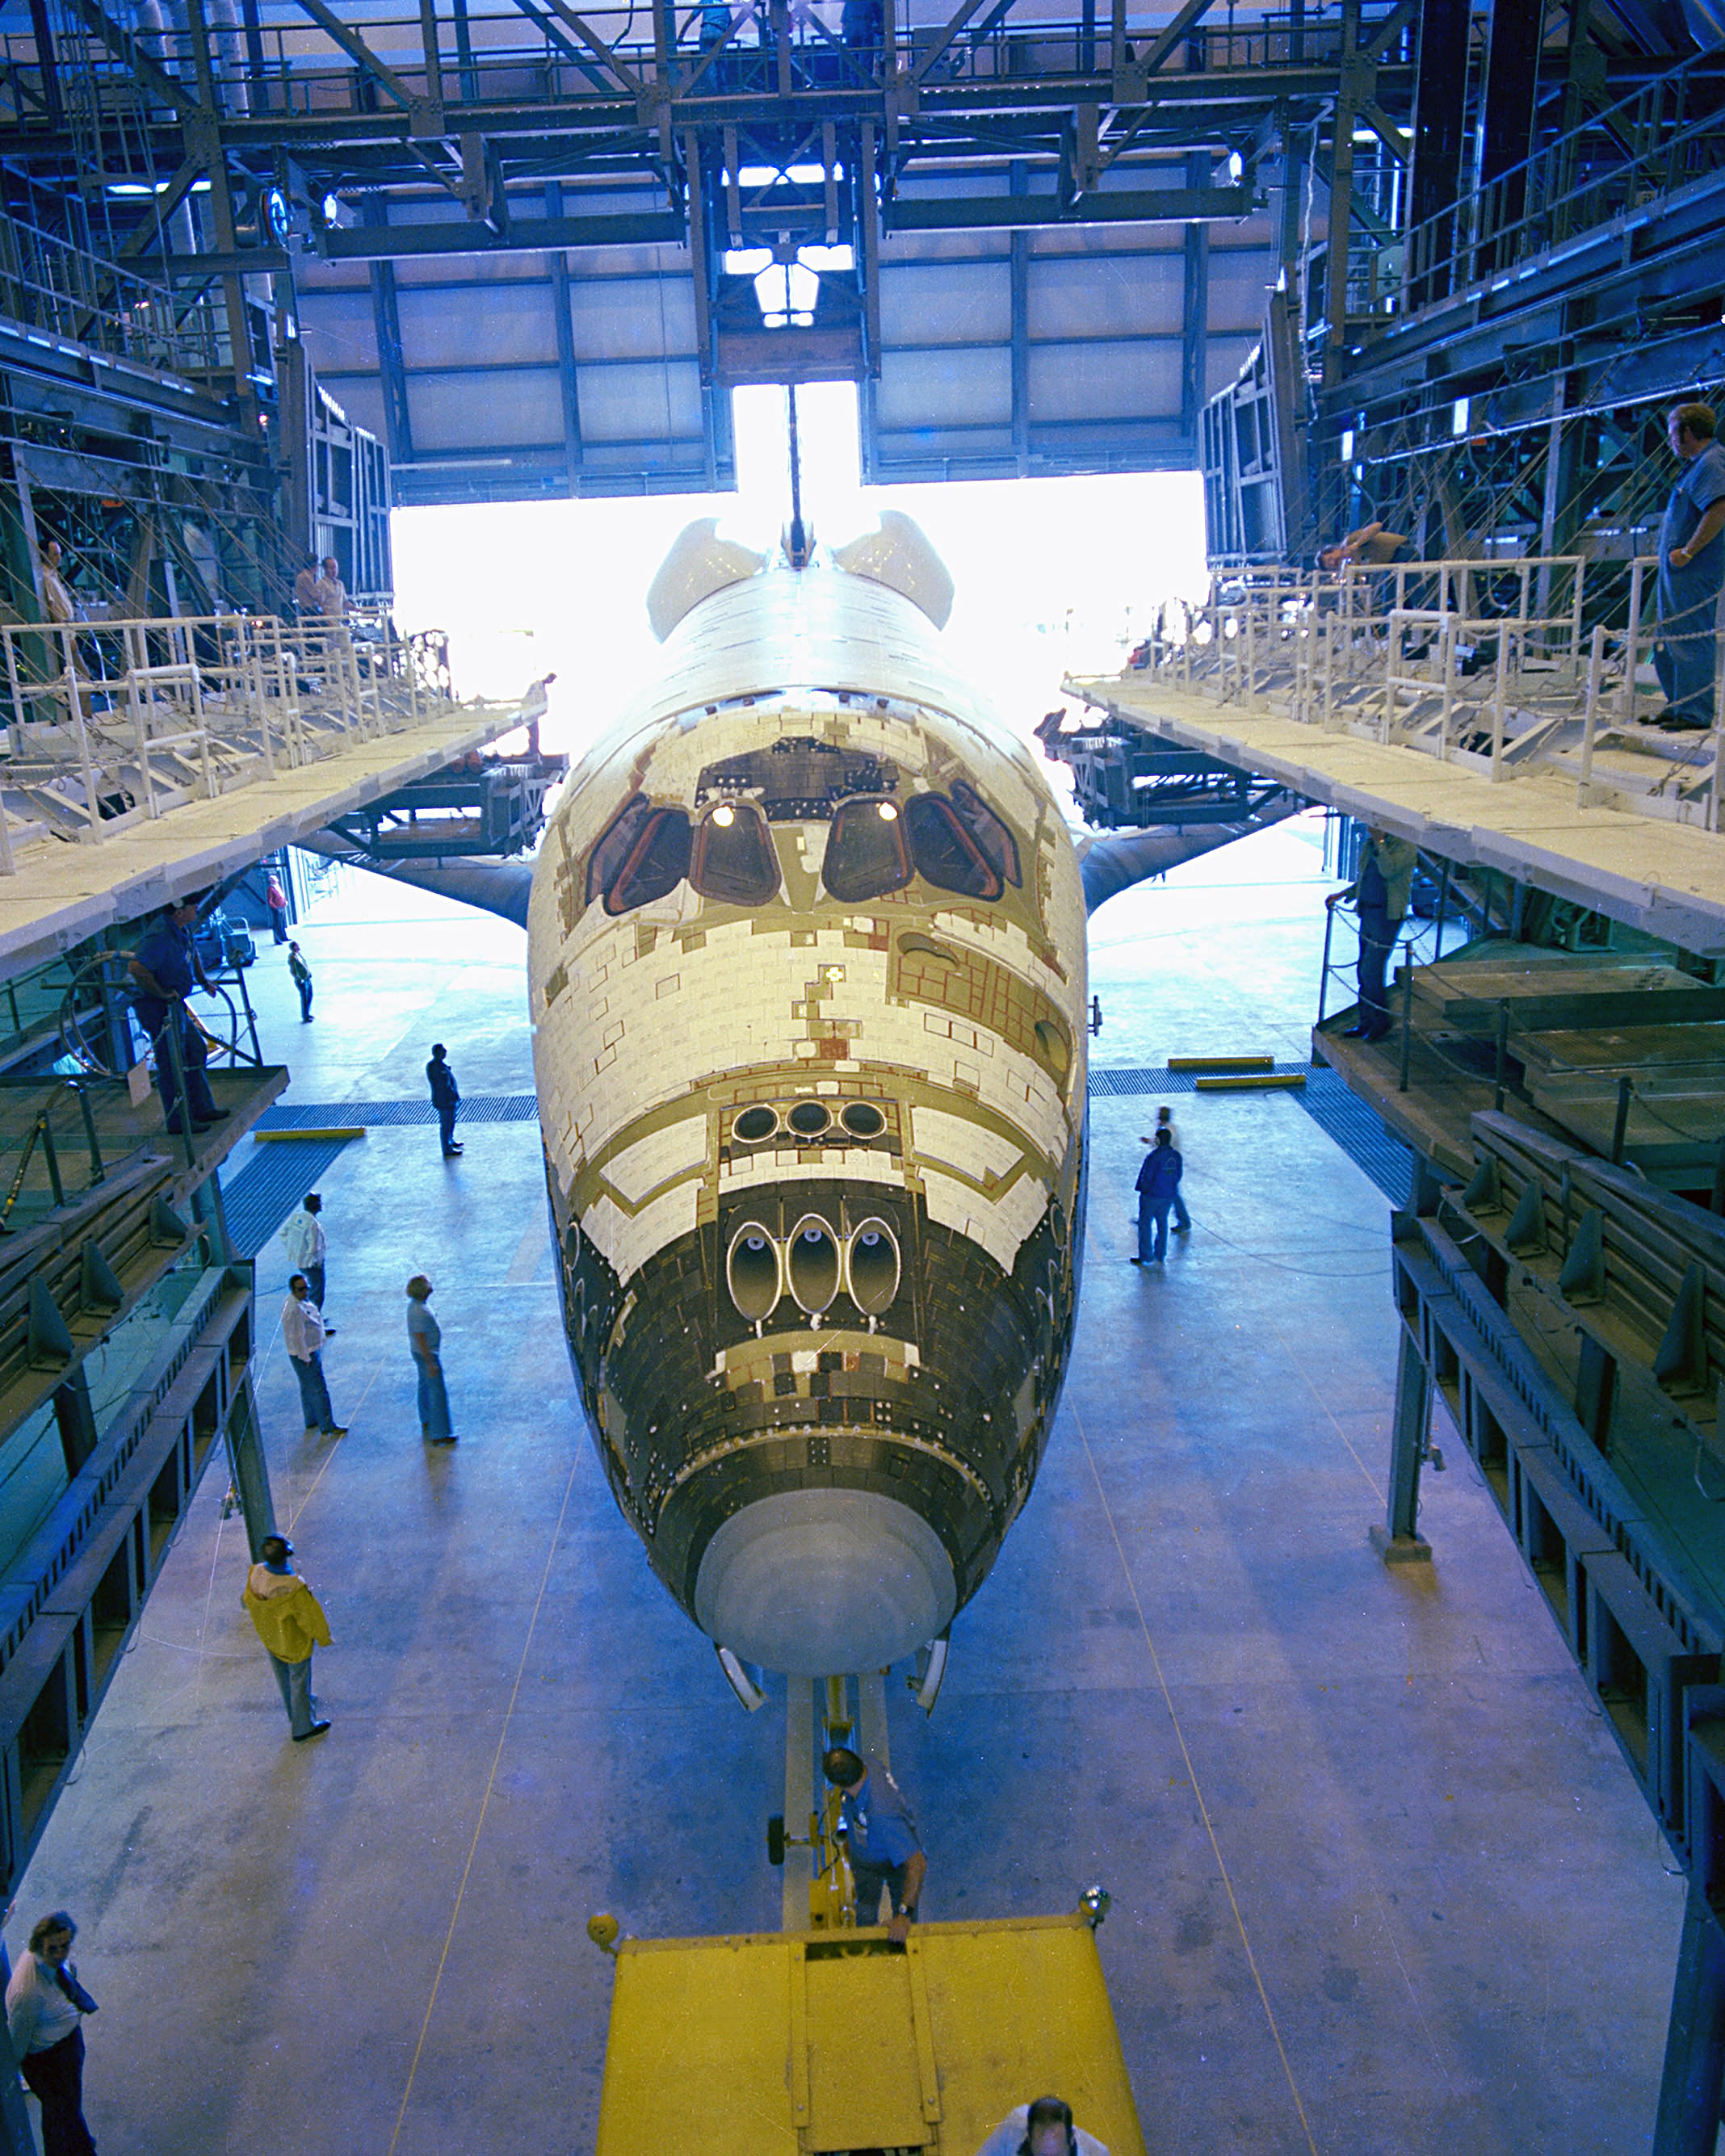 space shuttle columbia ps 58 - photo #18